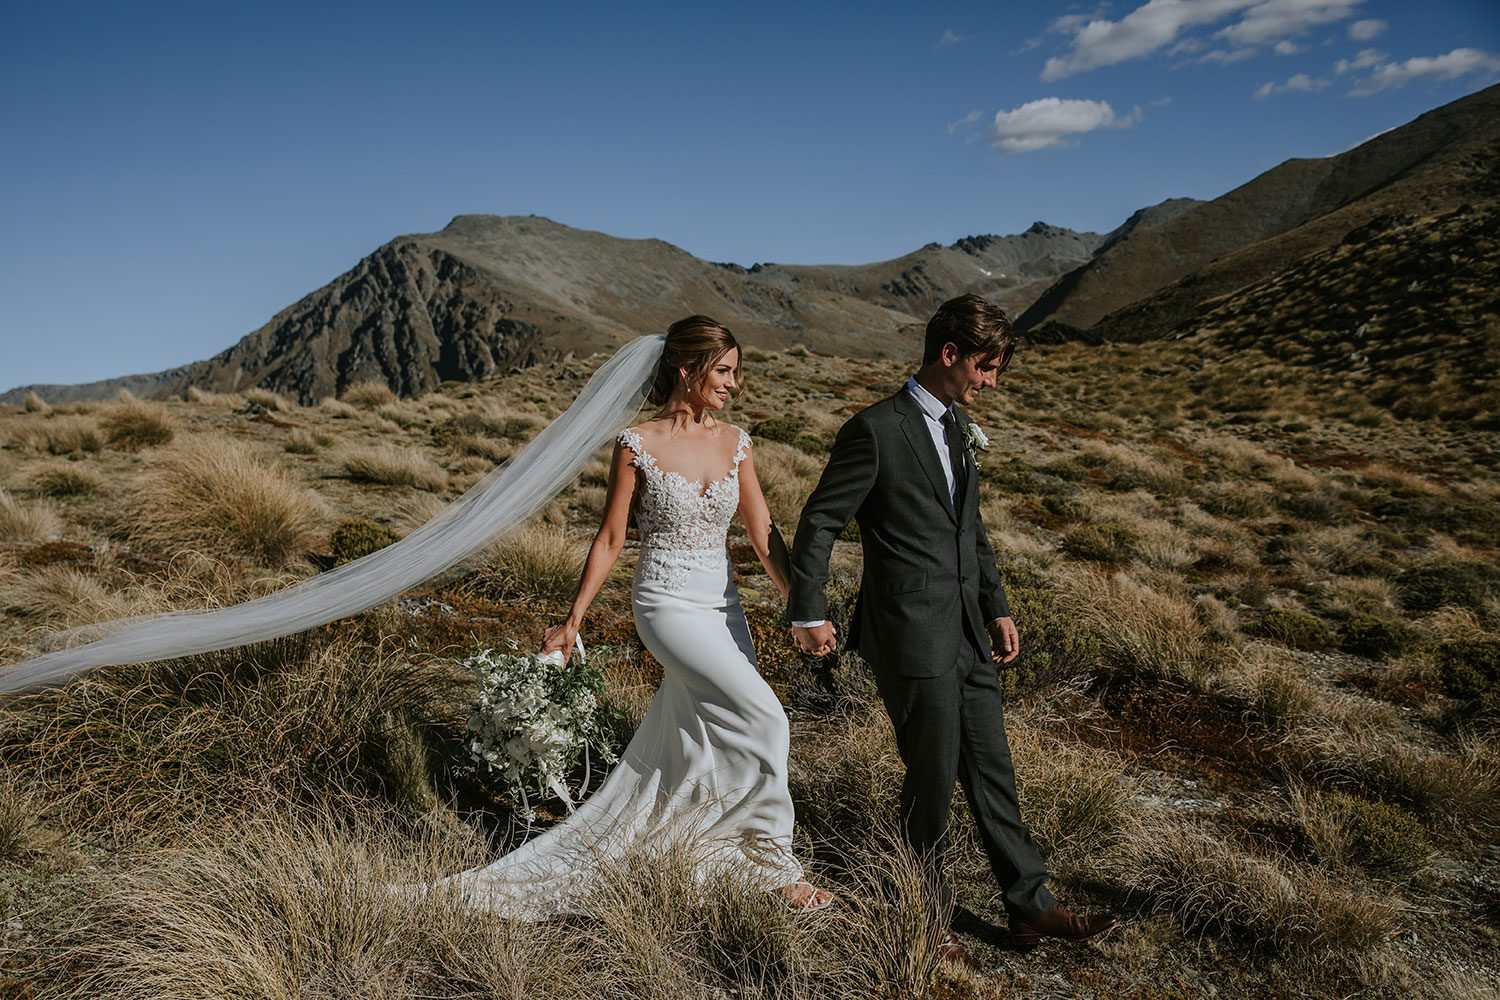 Bride wearing bespoke bridal gown with richly beaded lace over sheer tulle bodice and low back from Auckland wedding dress designer Vinka designs - walking with groom side shot